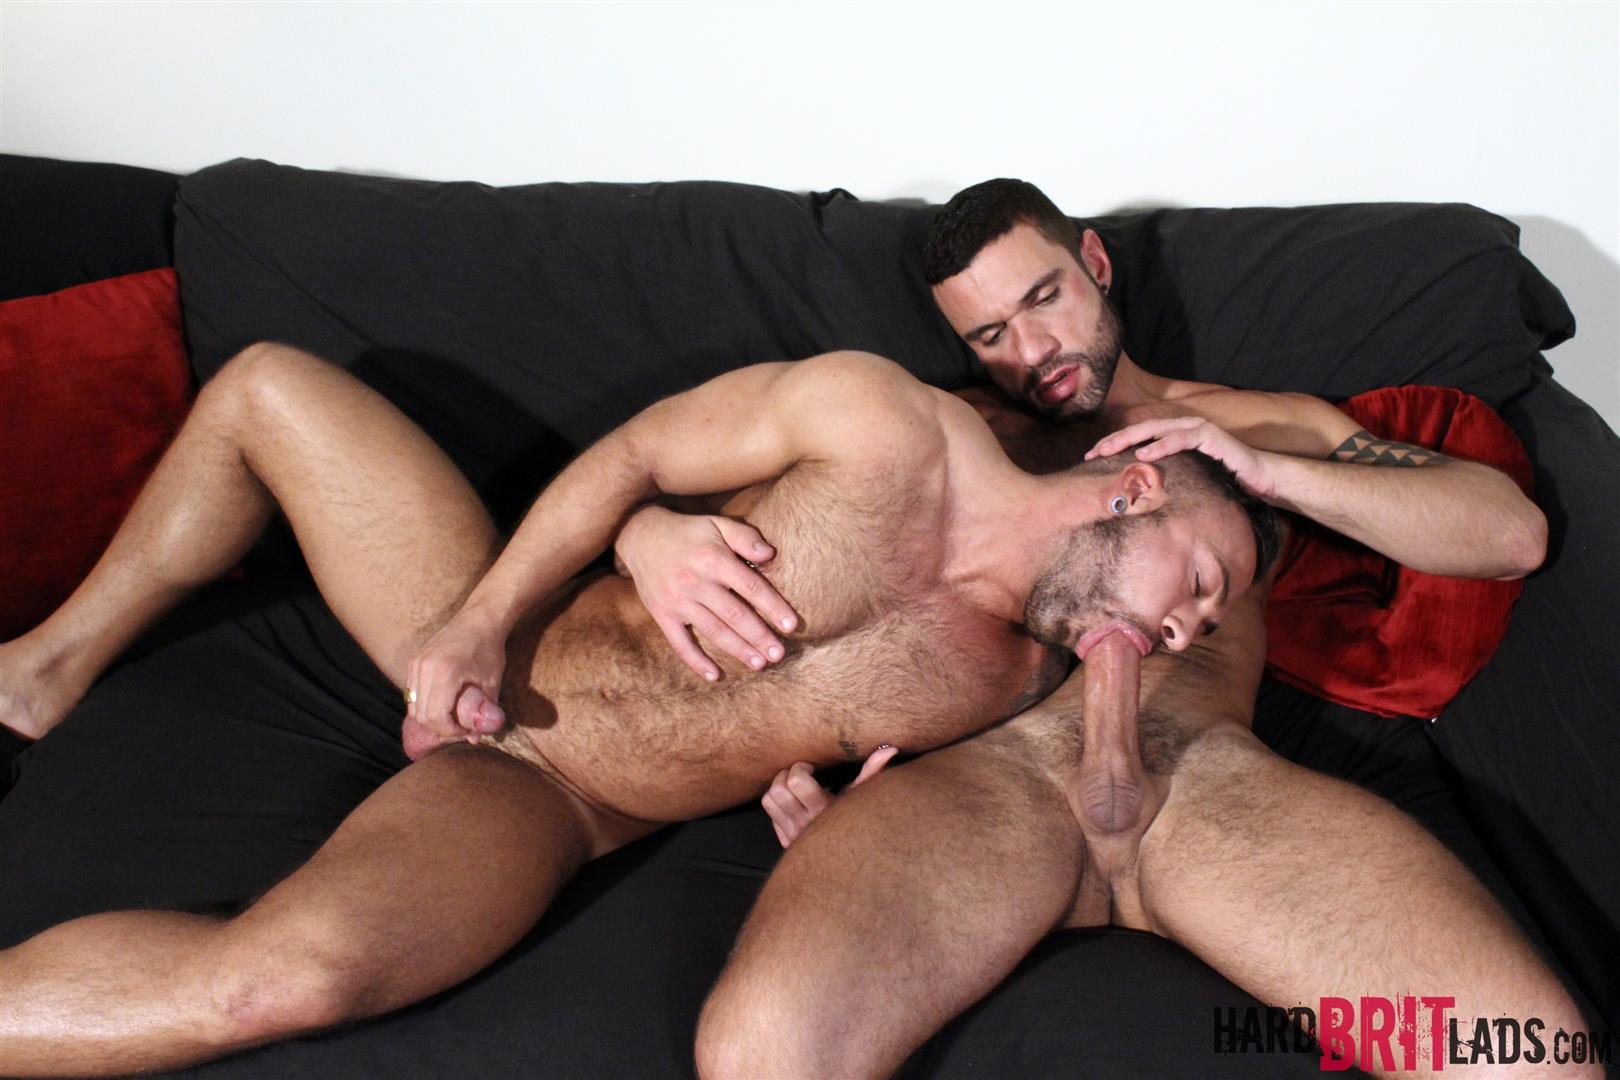 Hard Brit Lads Sergi Rodriguez and Letterio Amadeo Big Uncut Cock Fucking Amateur Gay Porn 12 Hairy British Muscle Hunks Fucking With Their Big Uncut Cocks